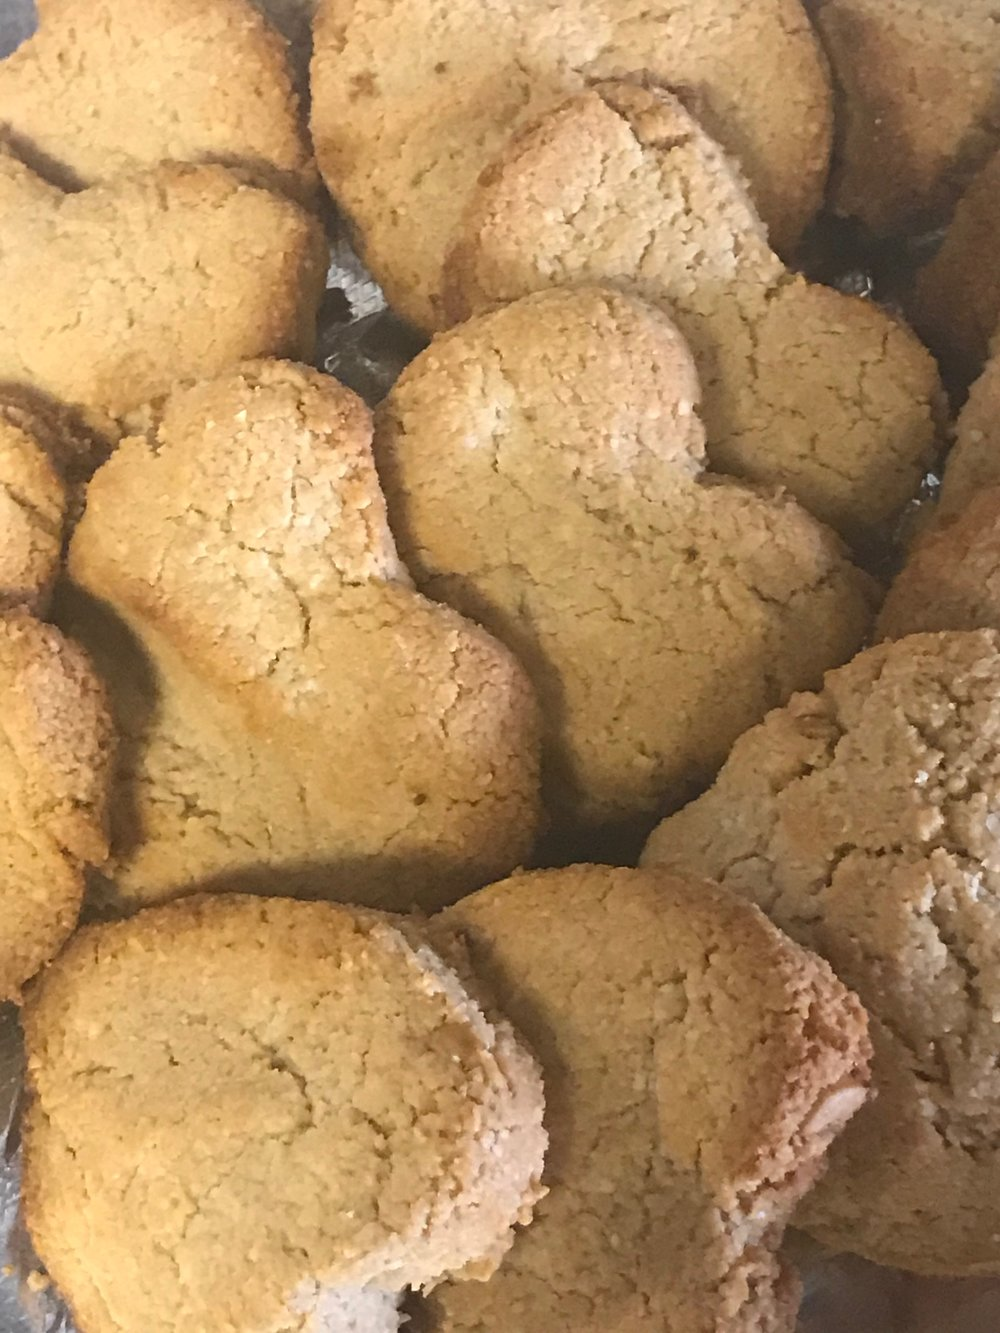 Homemade Dog Scones and Dog Biscuits